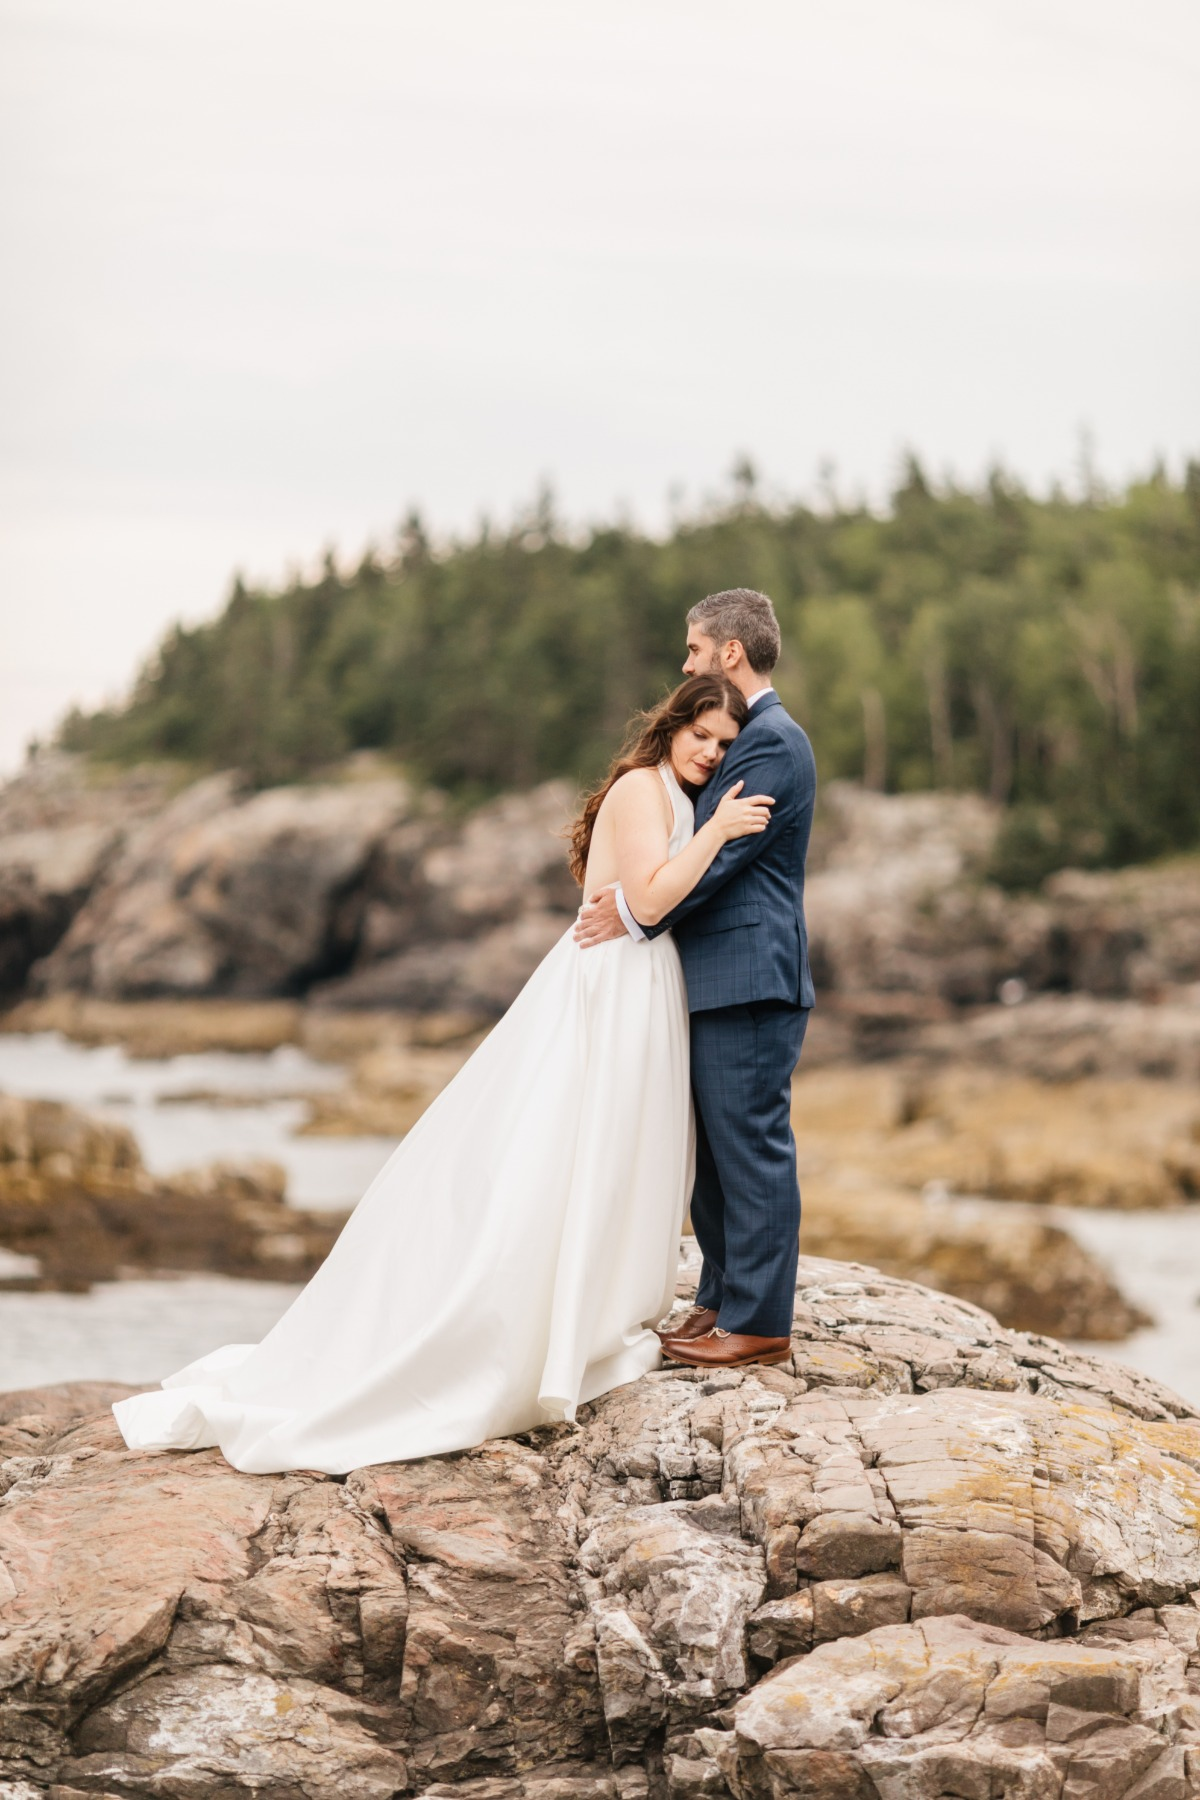 Seaside wedding photos